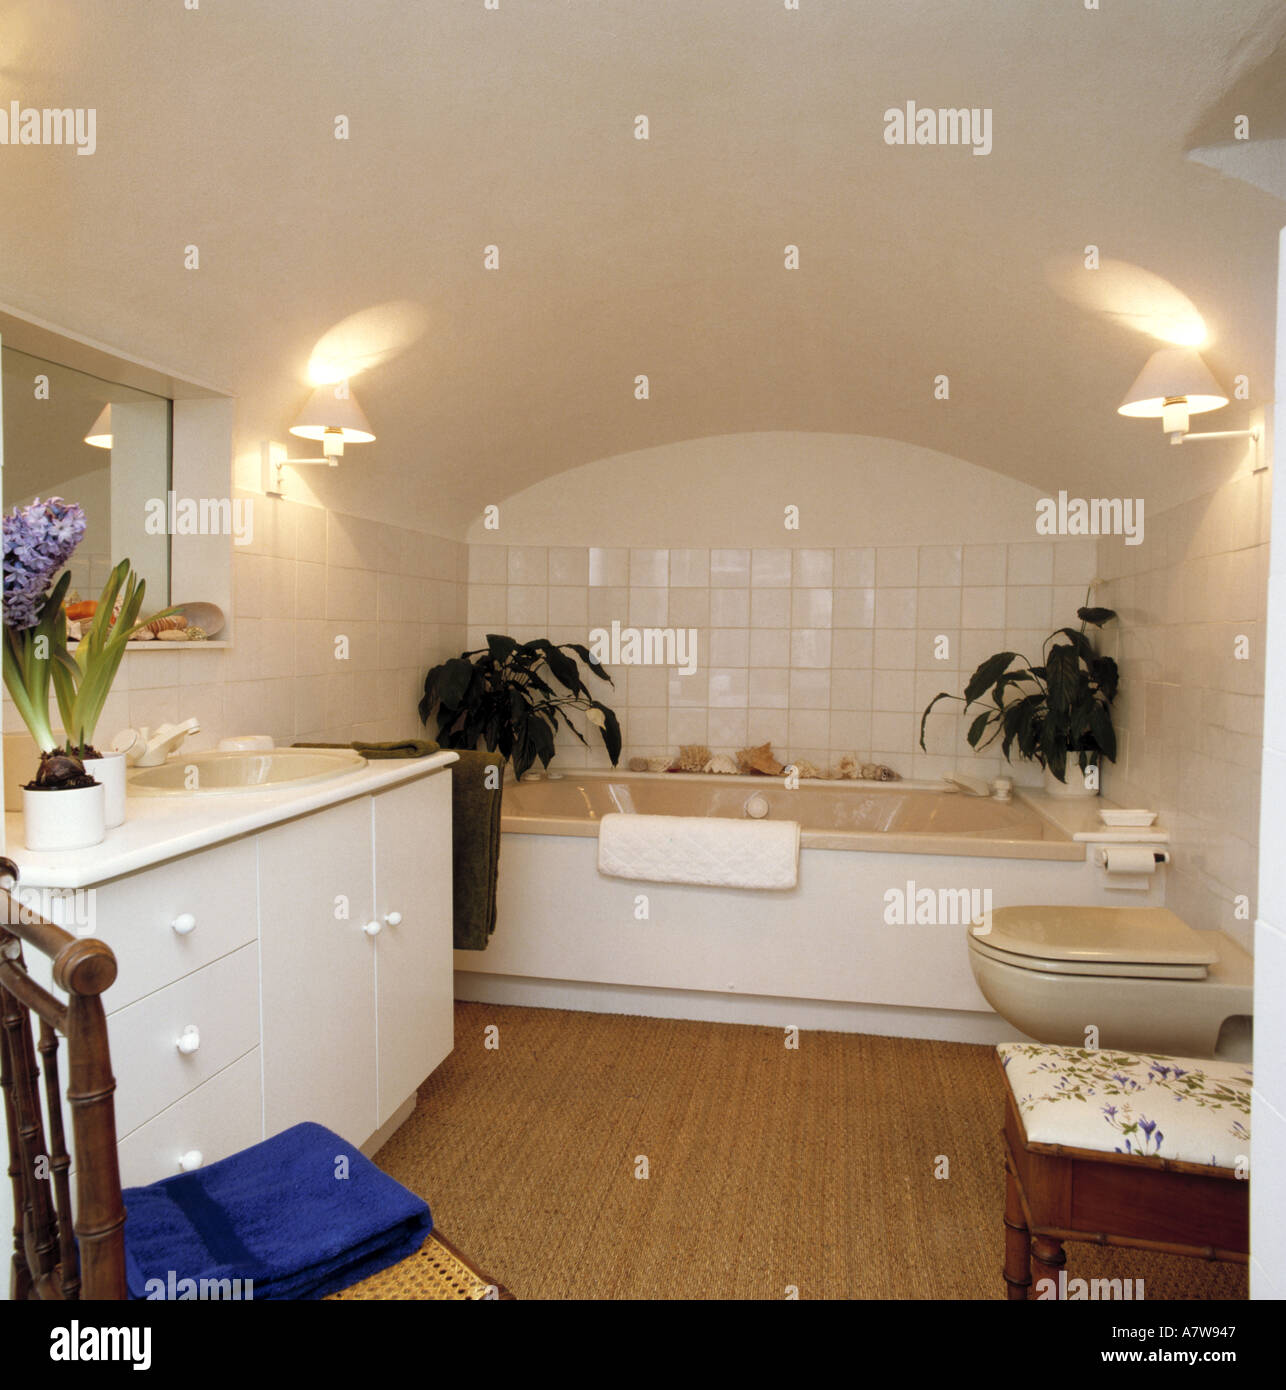 Sisal carpet and green houseplants in white tiled basement bathroom stock photo 2218310 alamy for Wall to wall carpet for bathroom